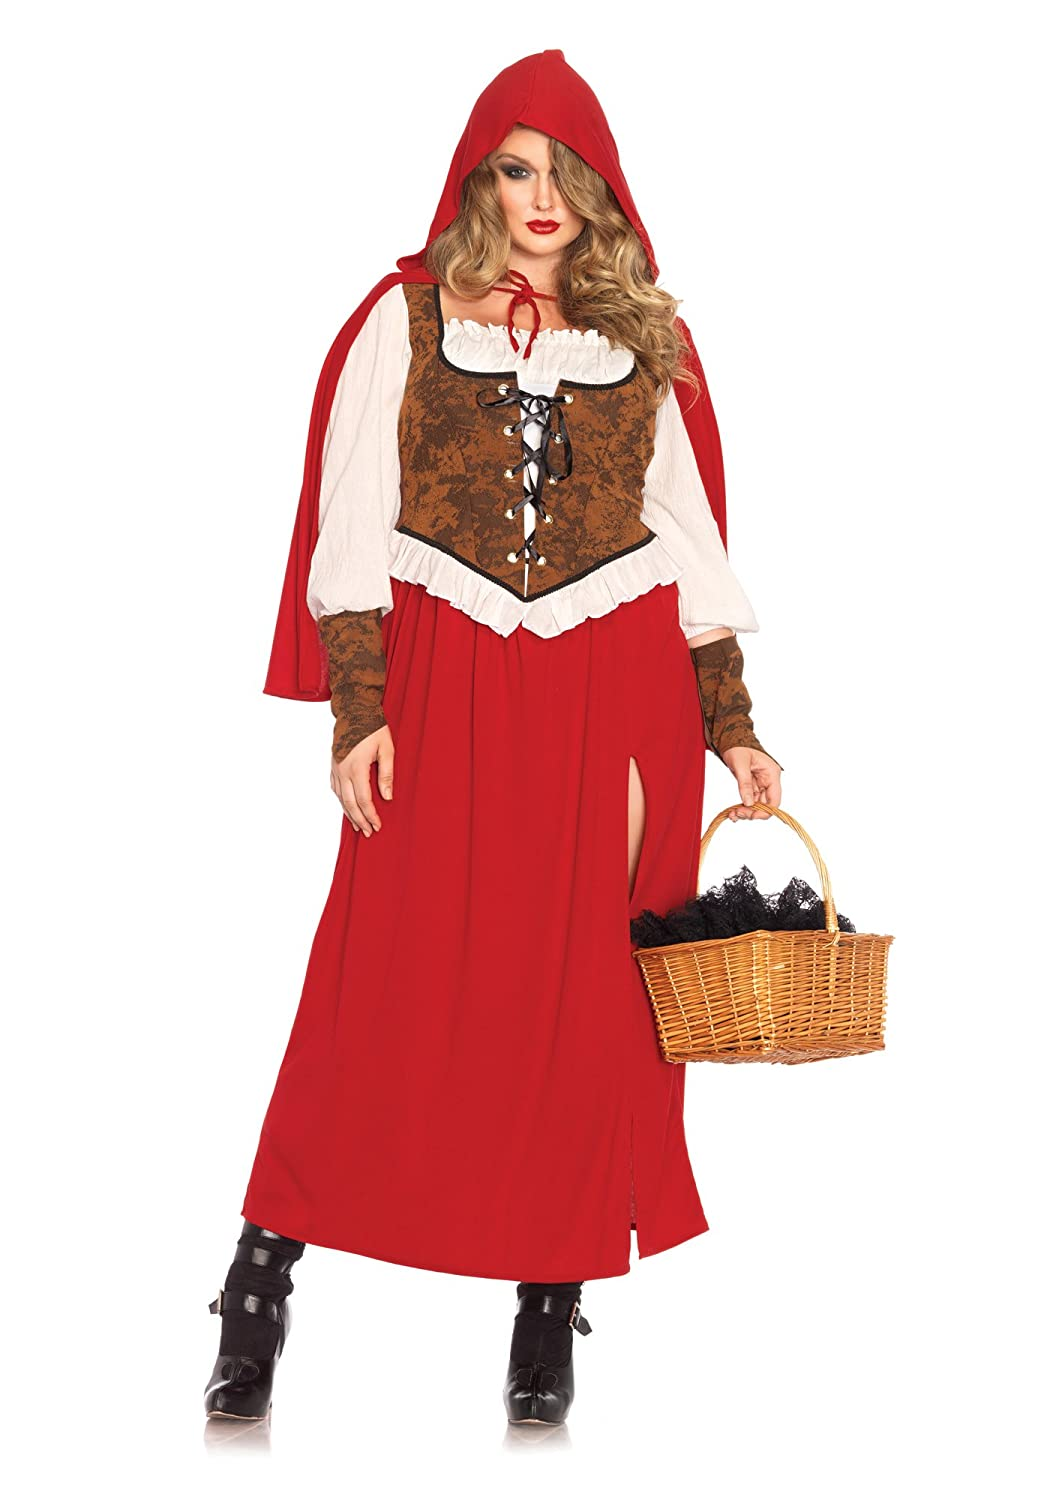 Plus Size Full Figure Woodland Red Riding Hood Costume Leg Avenue